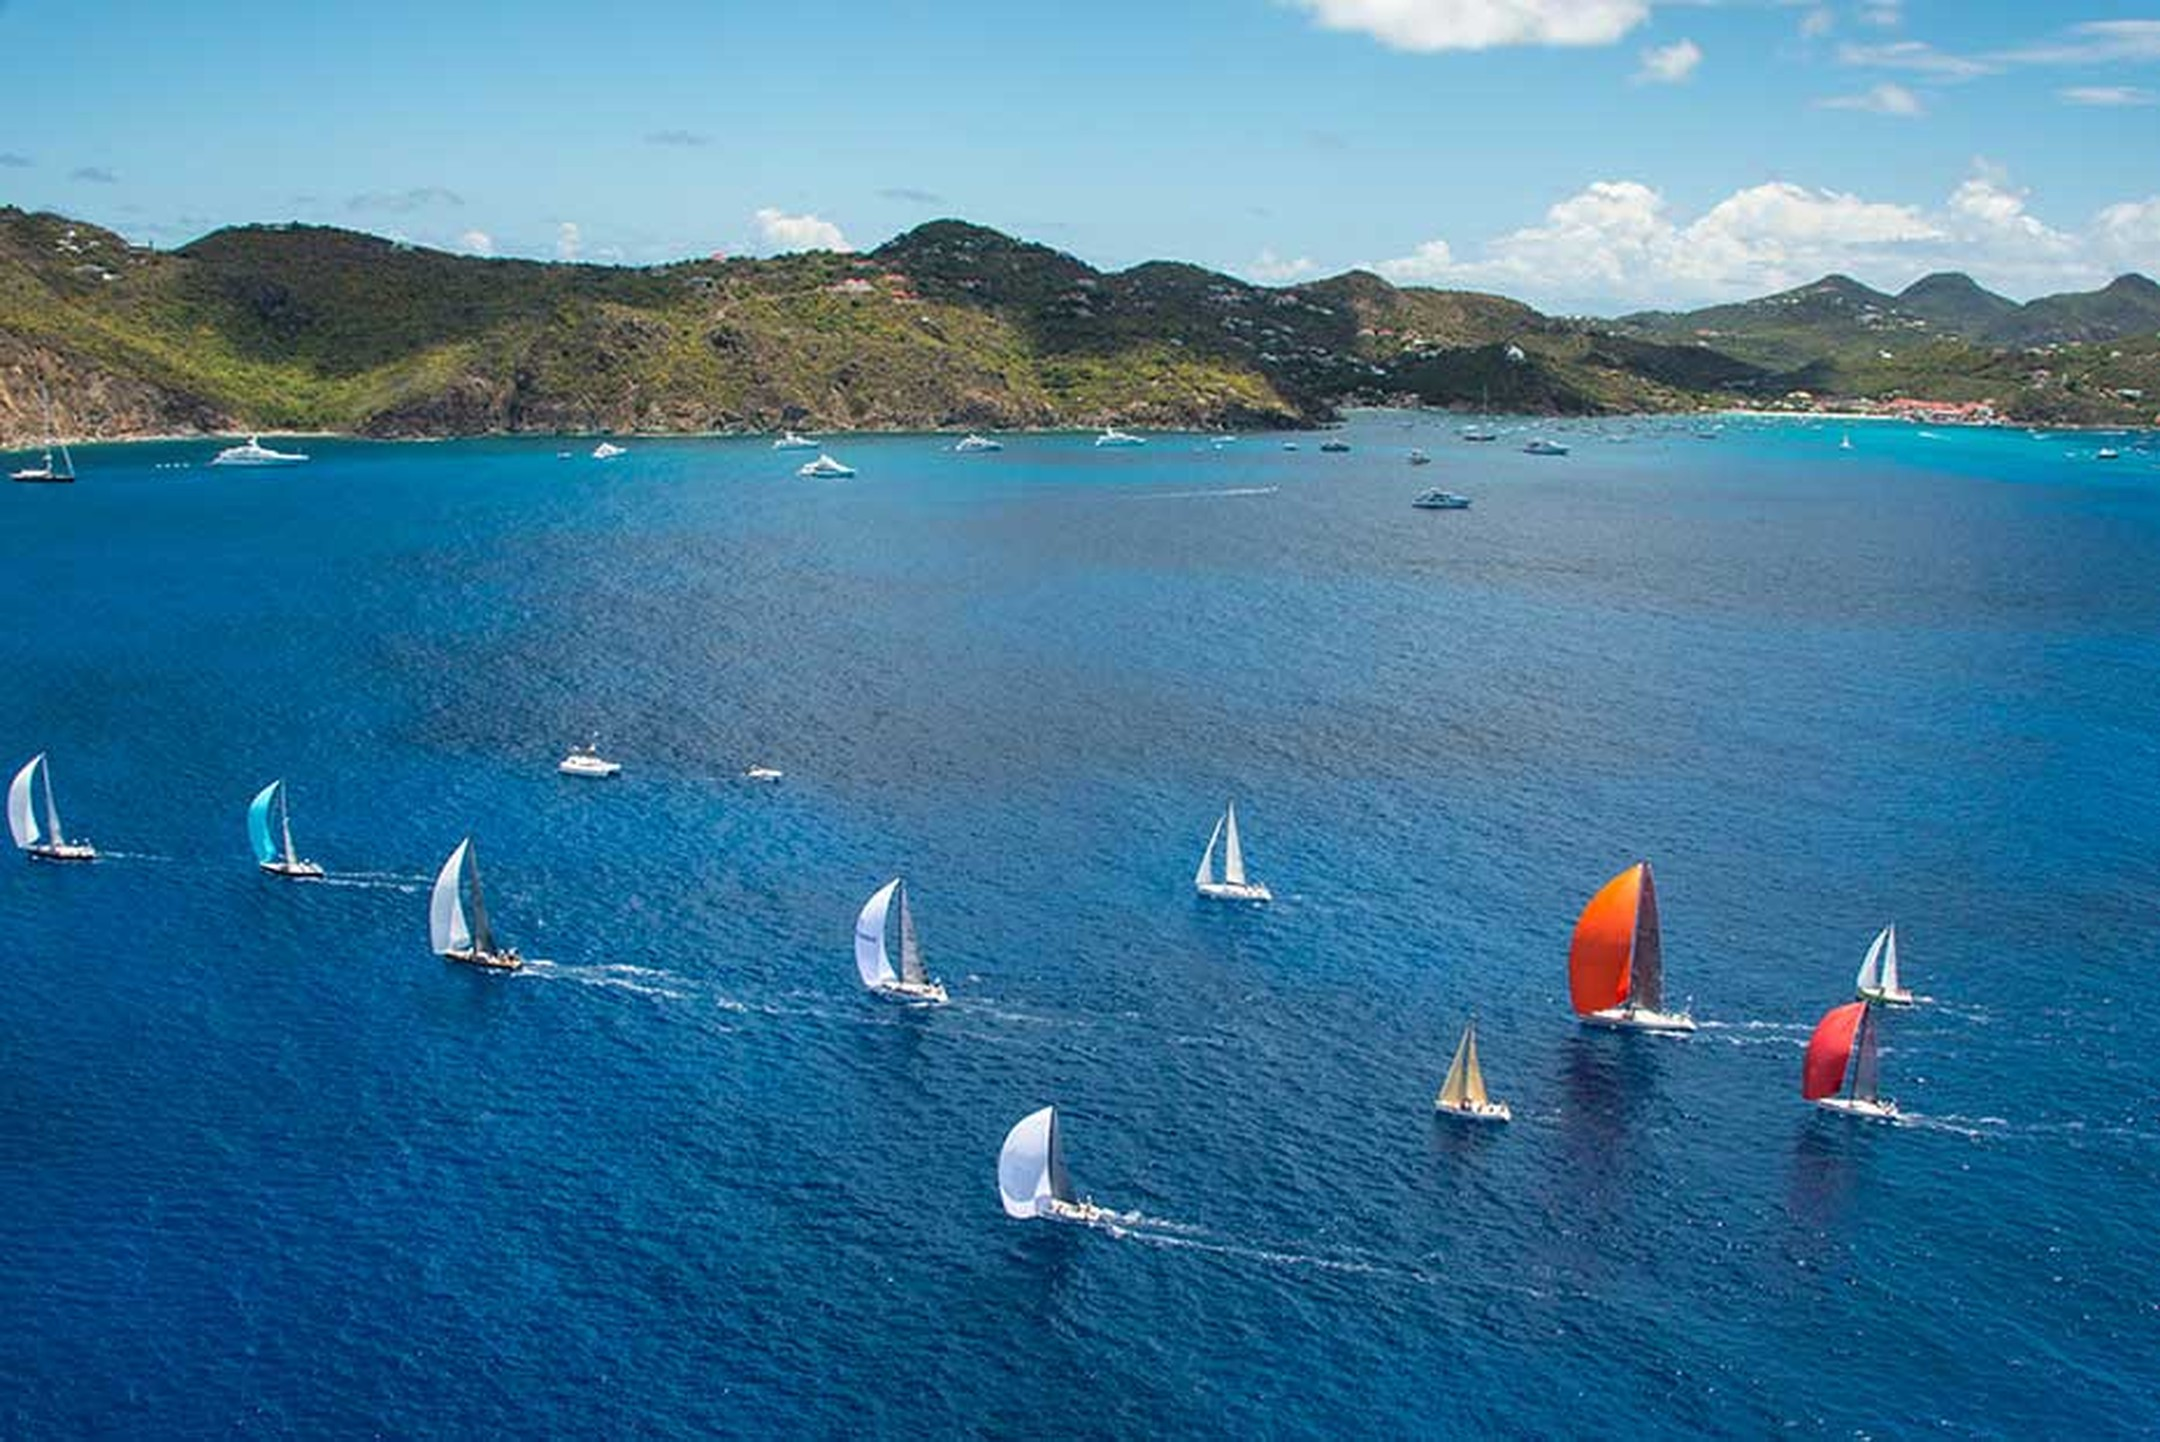 Maria Doulton filmed the sailors aboard the 45ft sailing boat Jolt 2, captained by Peter Harrison, CEO of Richard Mille Europe, as it participated in the Les Voiles de Saint Barth 2014 regatta